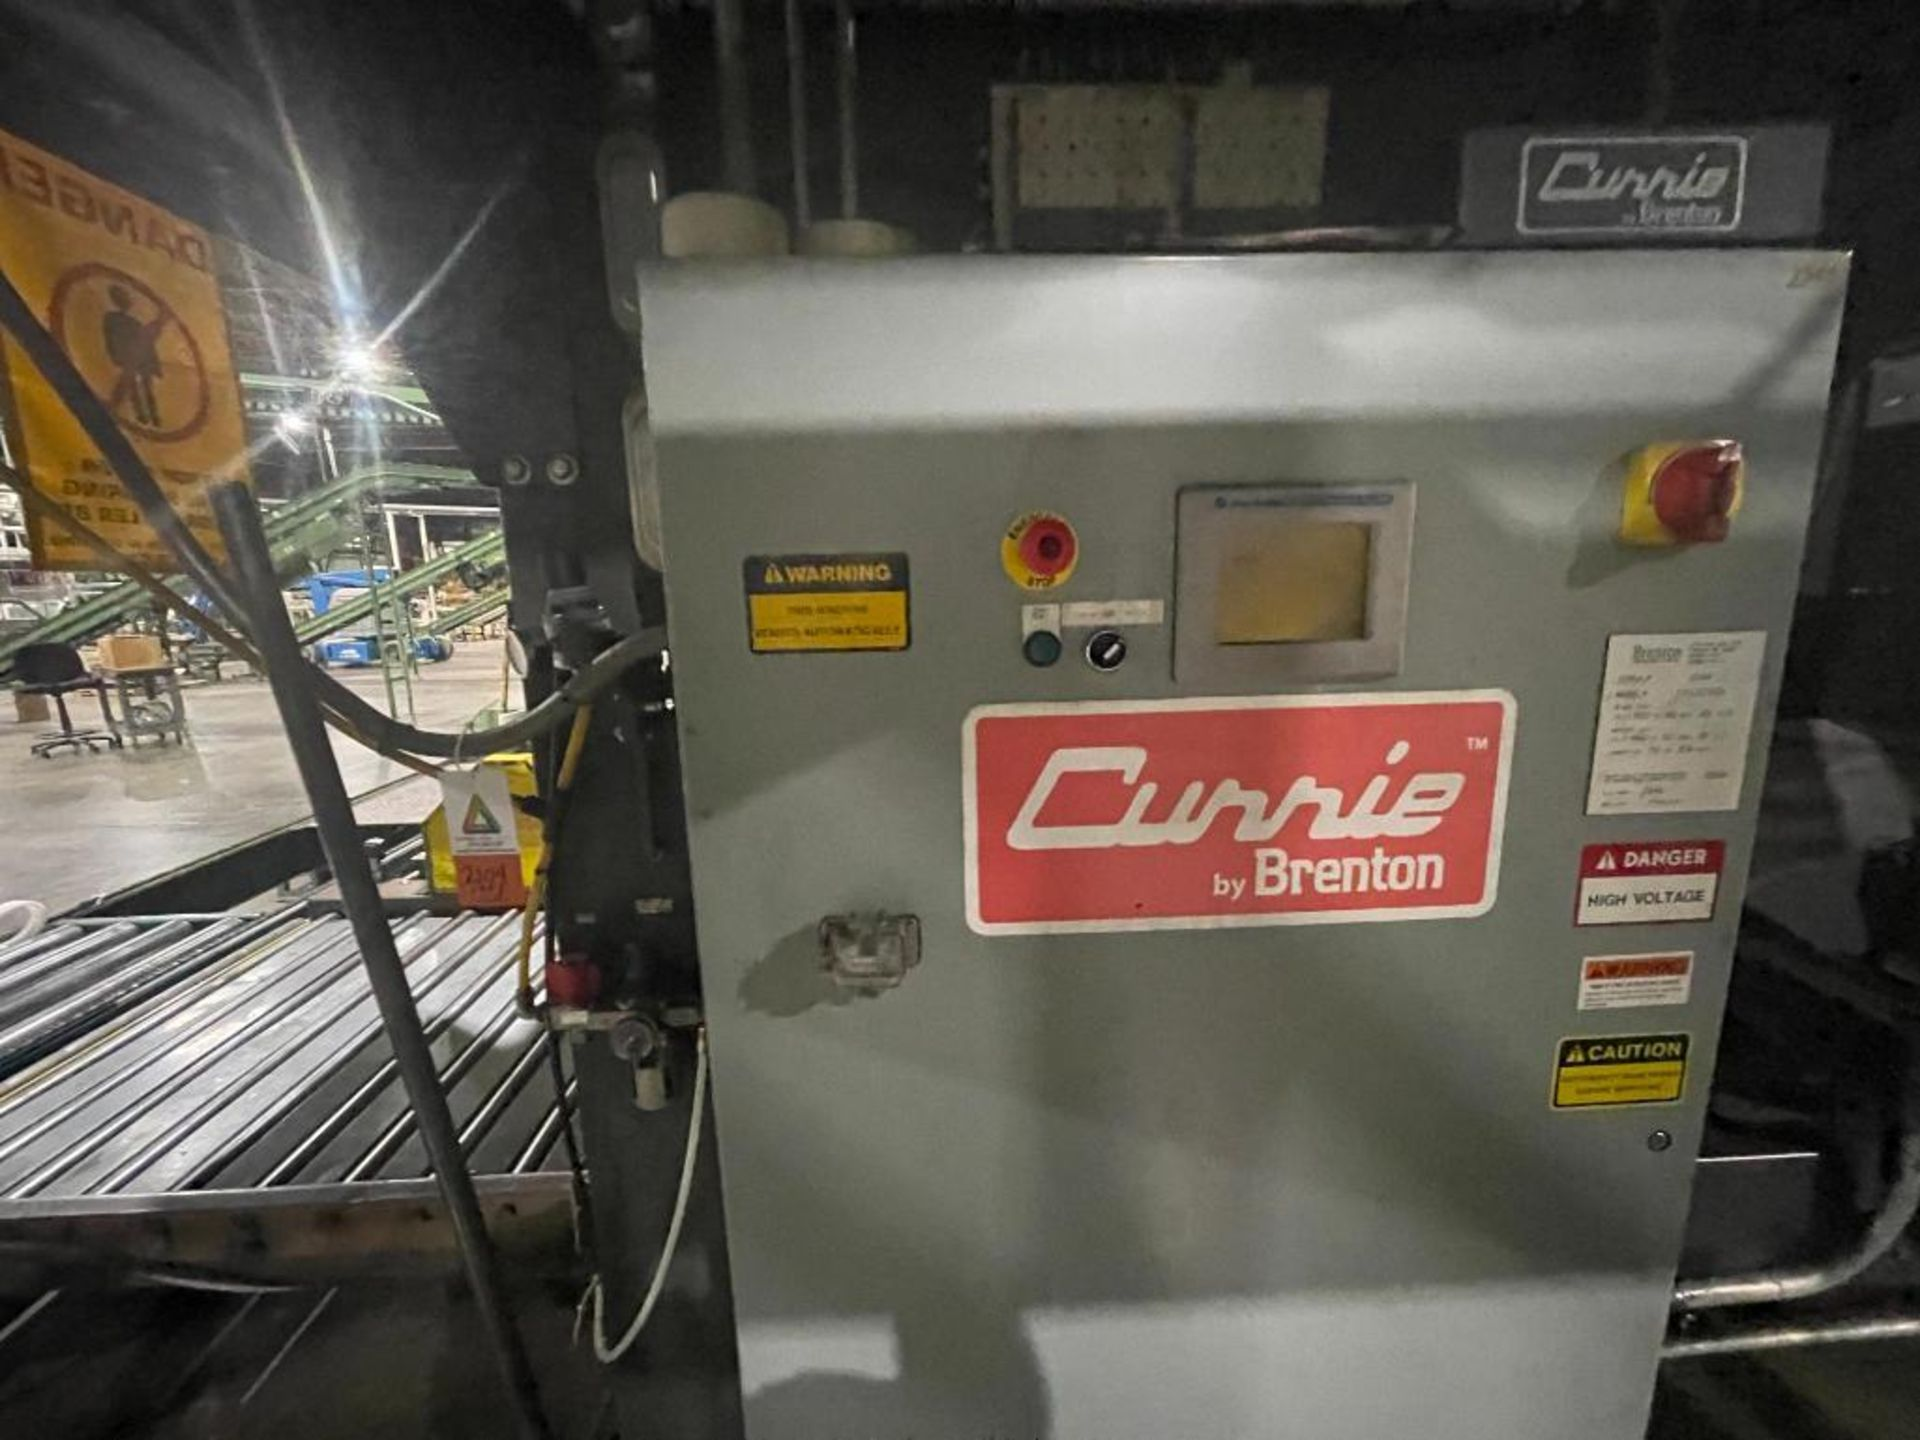 2008 Currie top to bottom palletizer, model PALLETIZER, sn 3348 - Image 14 of 28